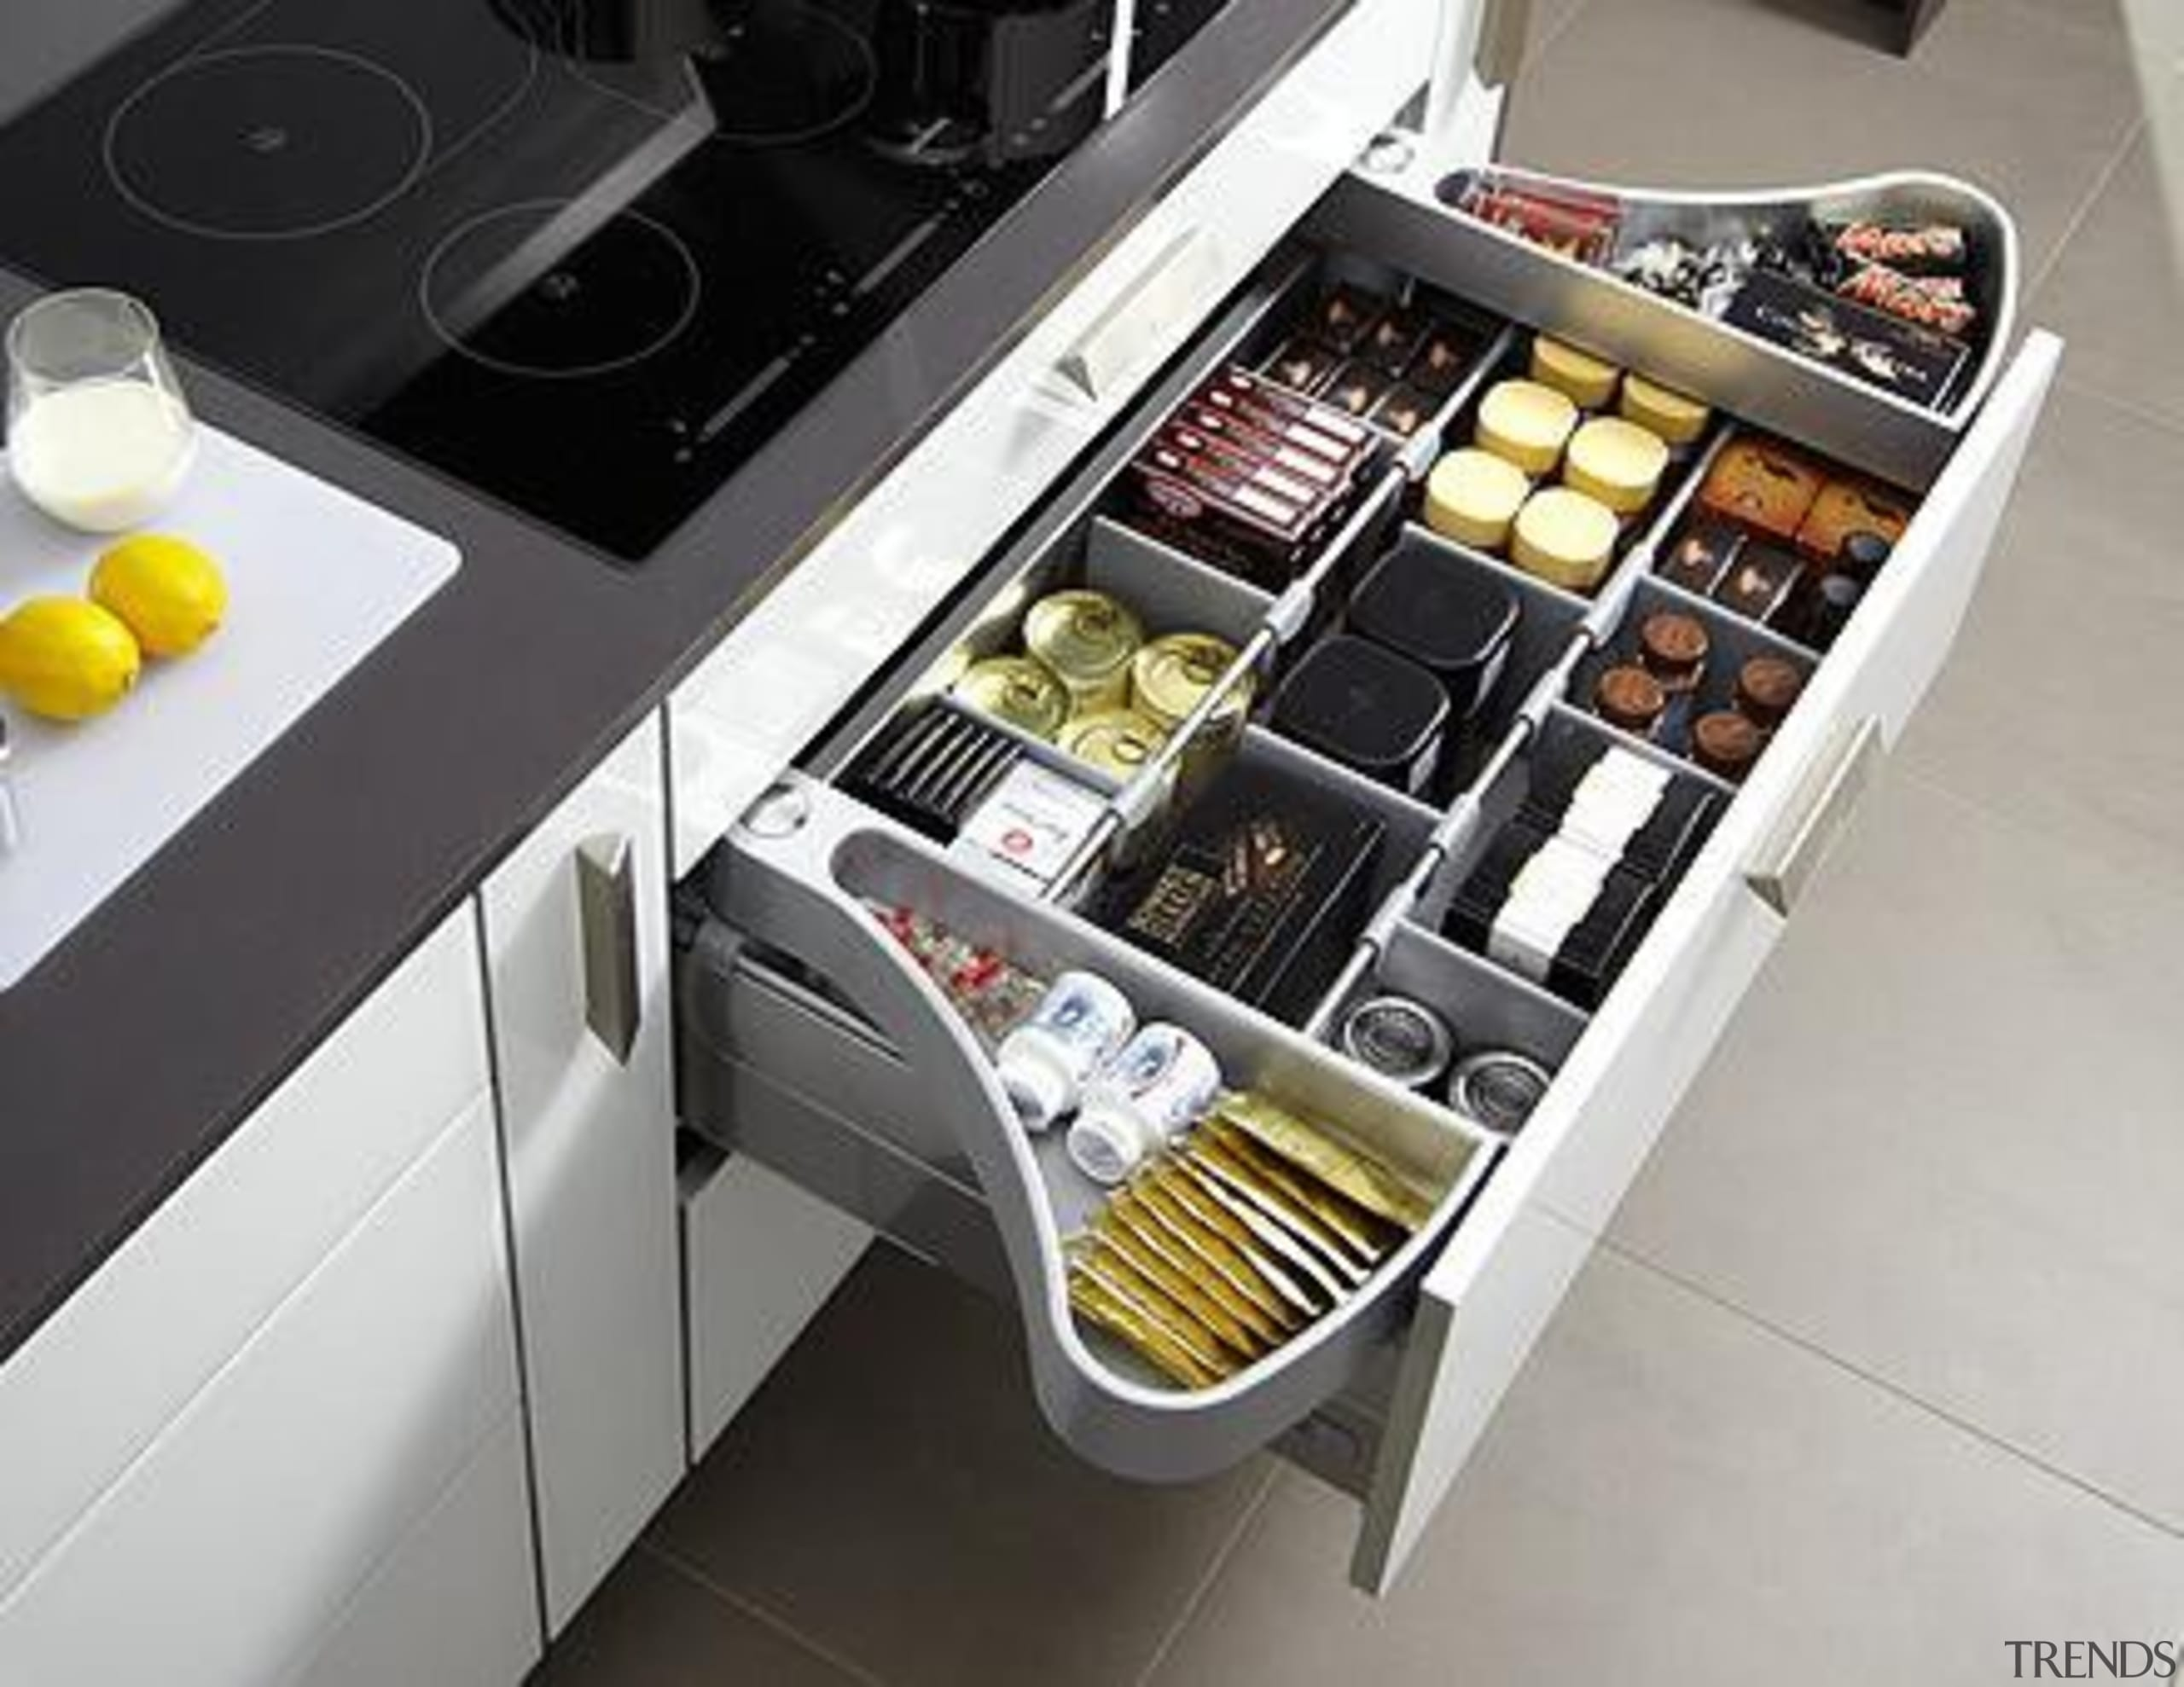 Moving compartments that swing out to the side furniture, kitchen, product, product design, gray, black